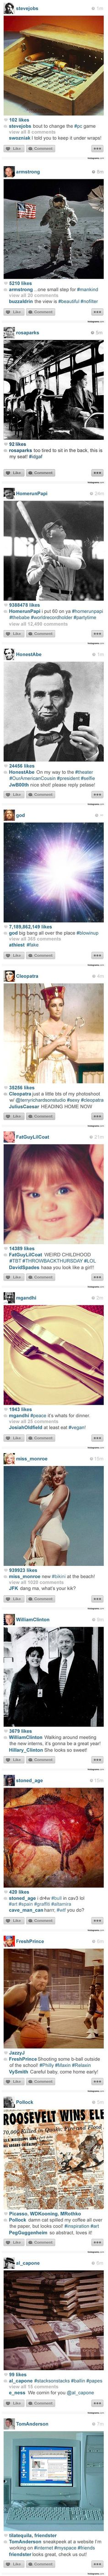 Geeky gadgets page 2 of 5863 gadgets and technology news - If Instagram Existed In The Past Here Is What 16 Famous People Might Have Posted Gadget Newstech